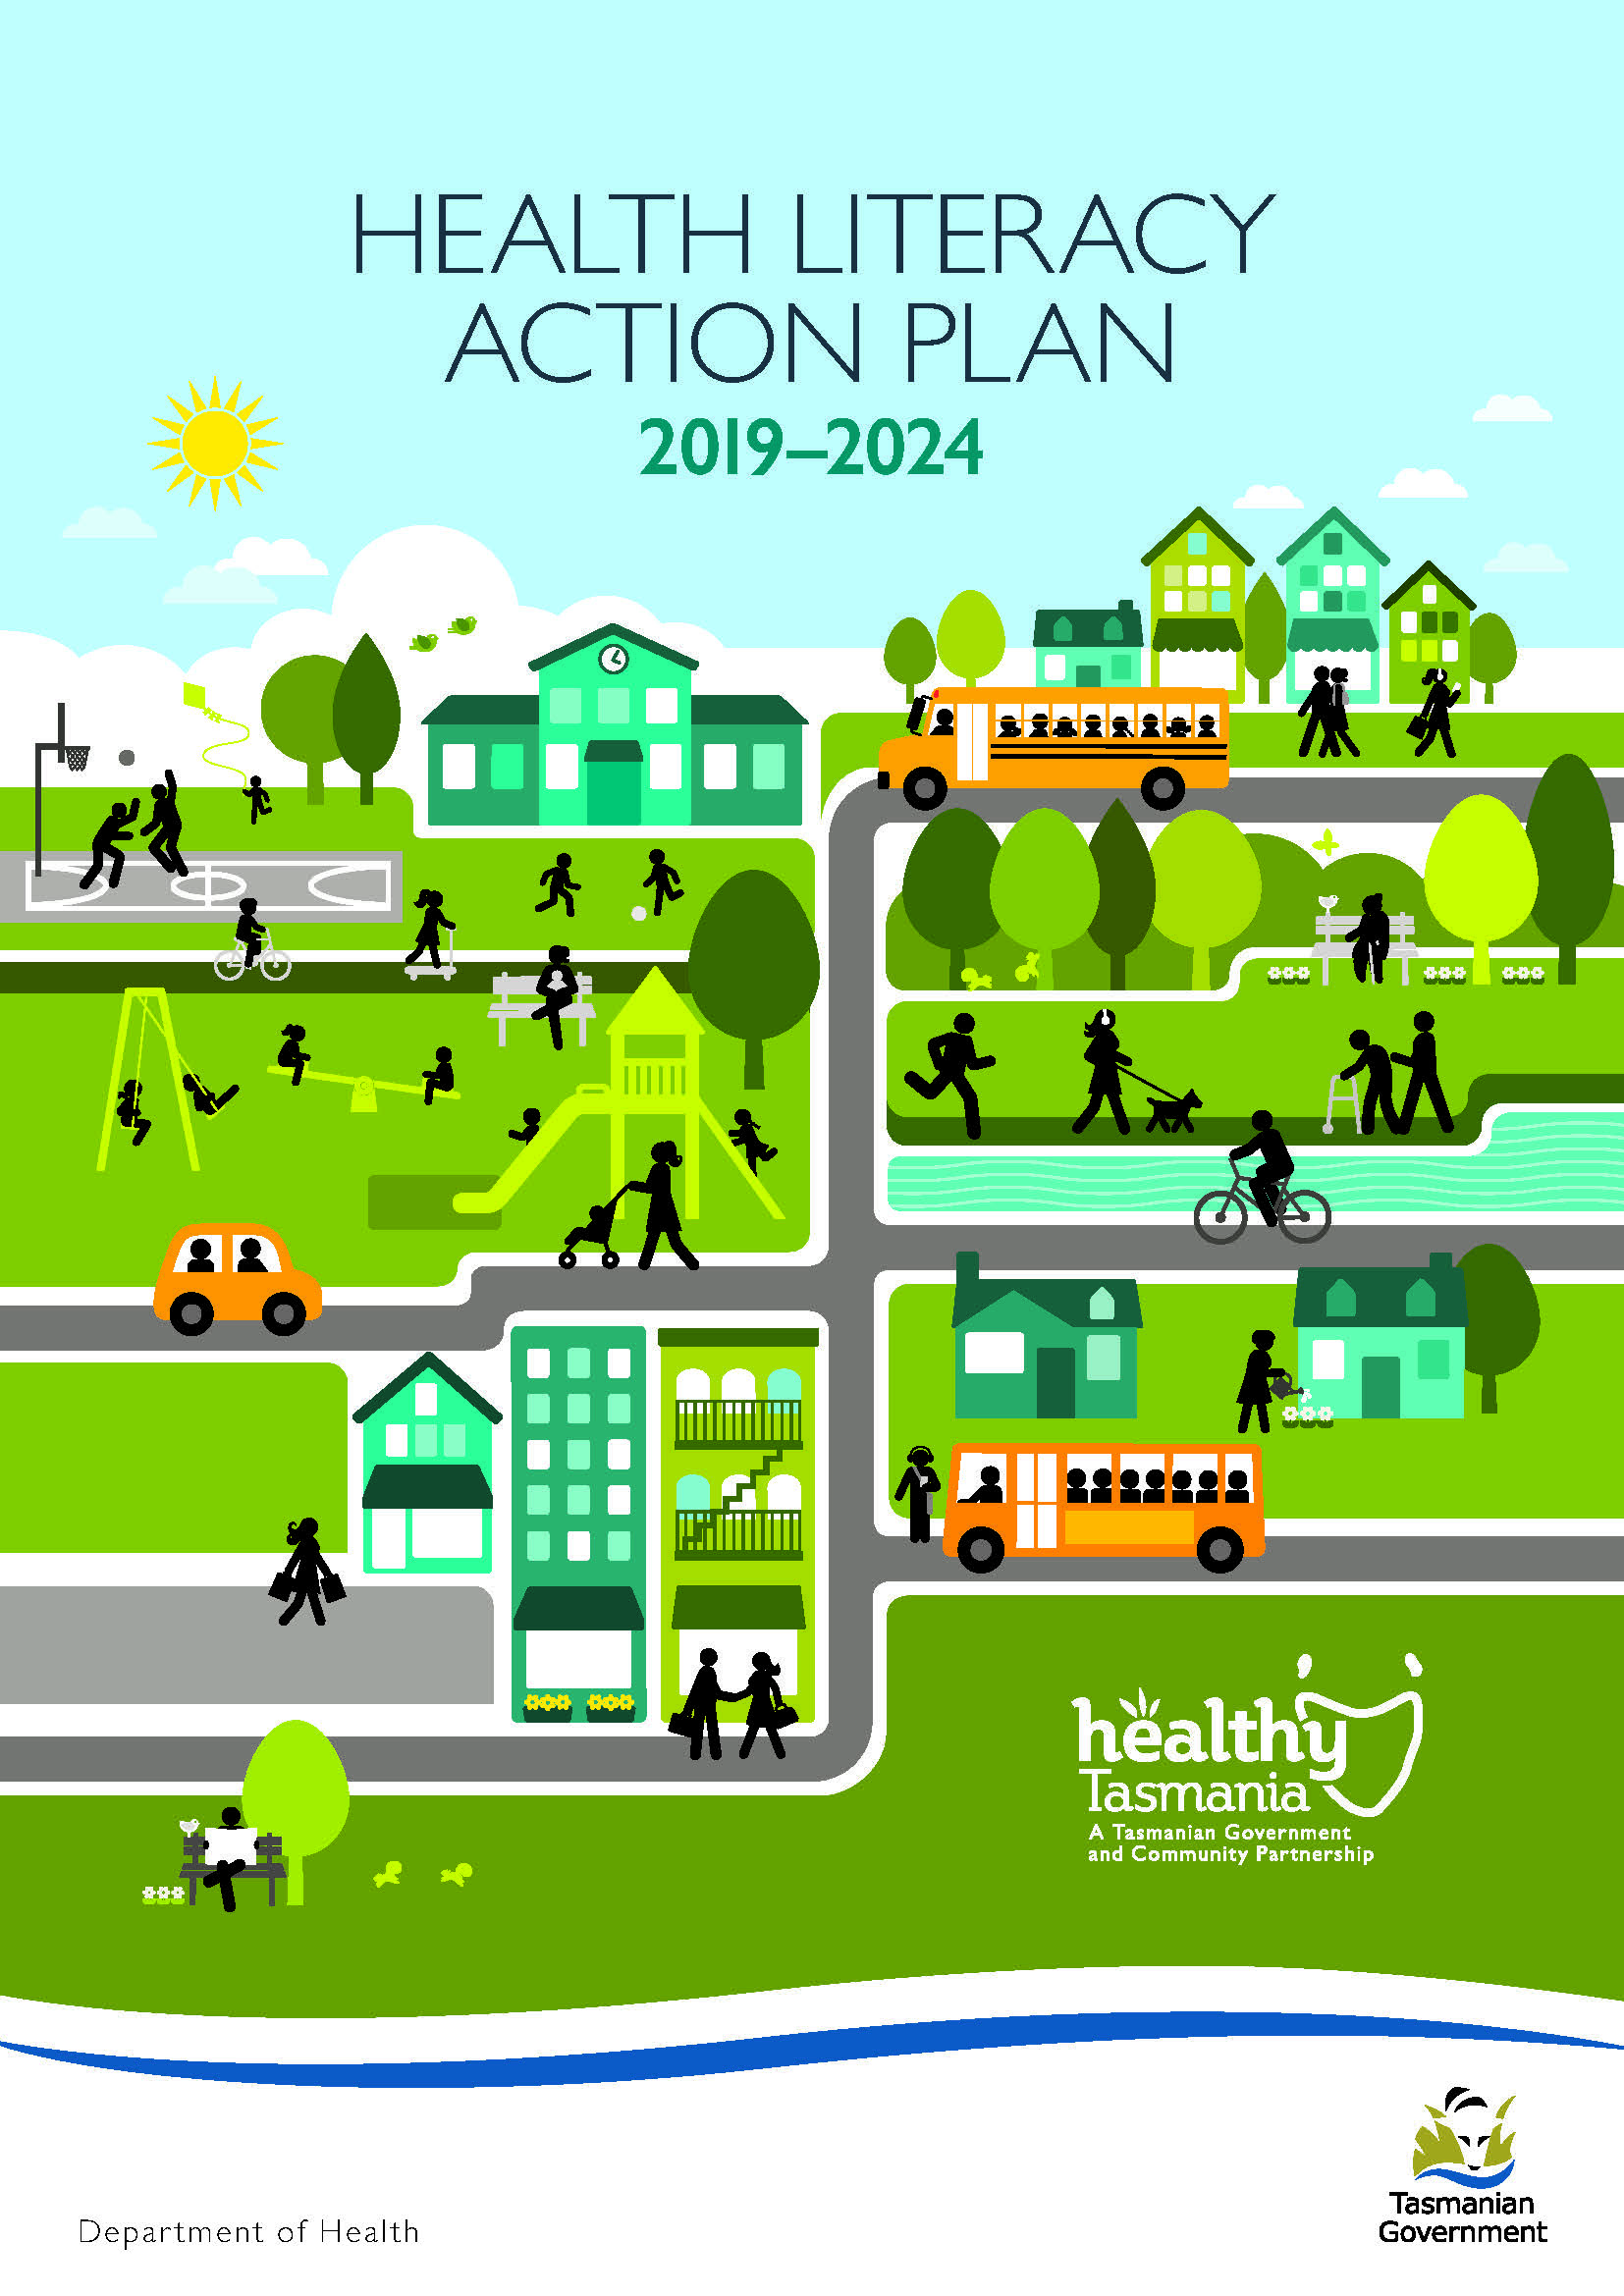 Tasmania Department of Health - Health literacy action plan